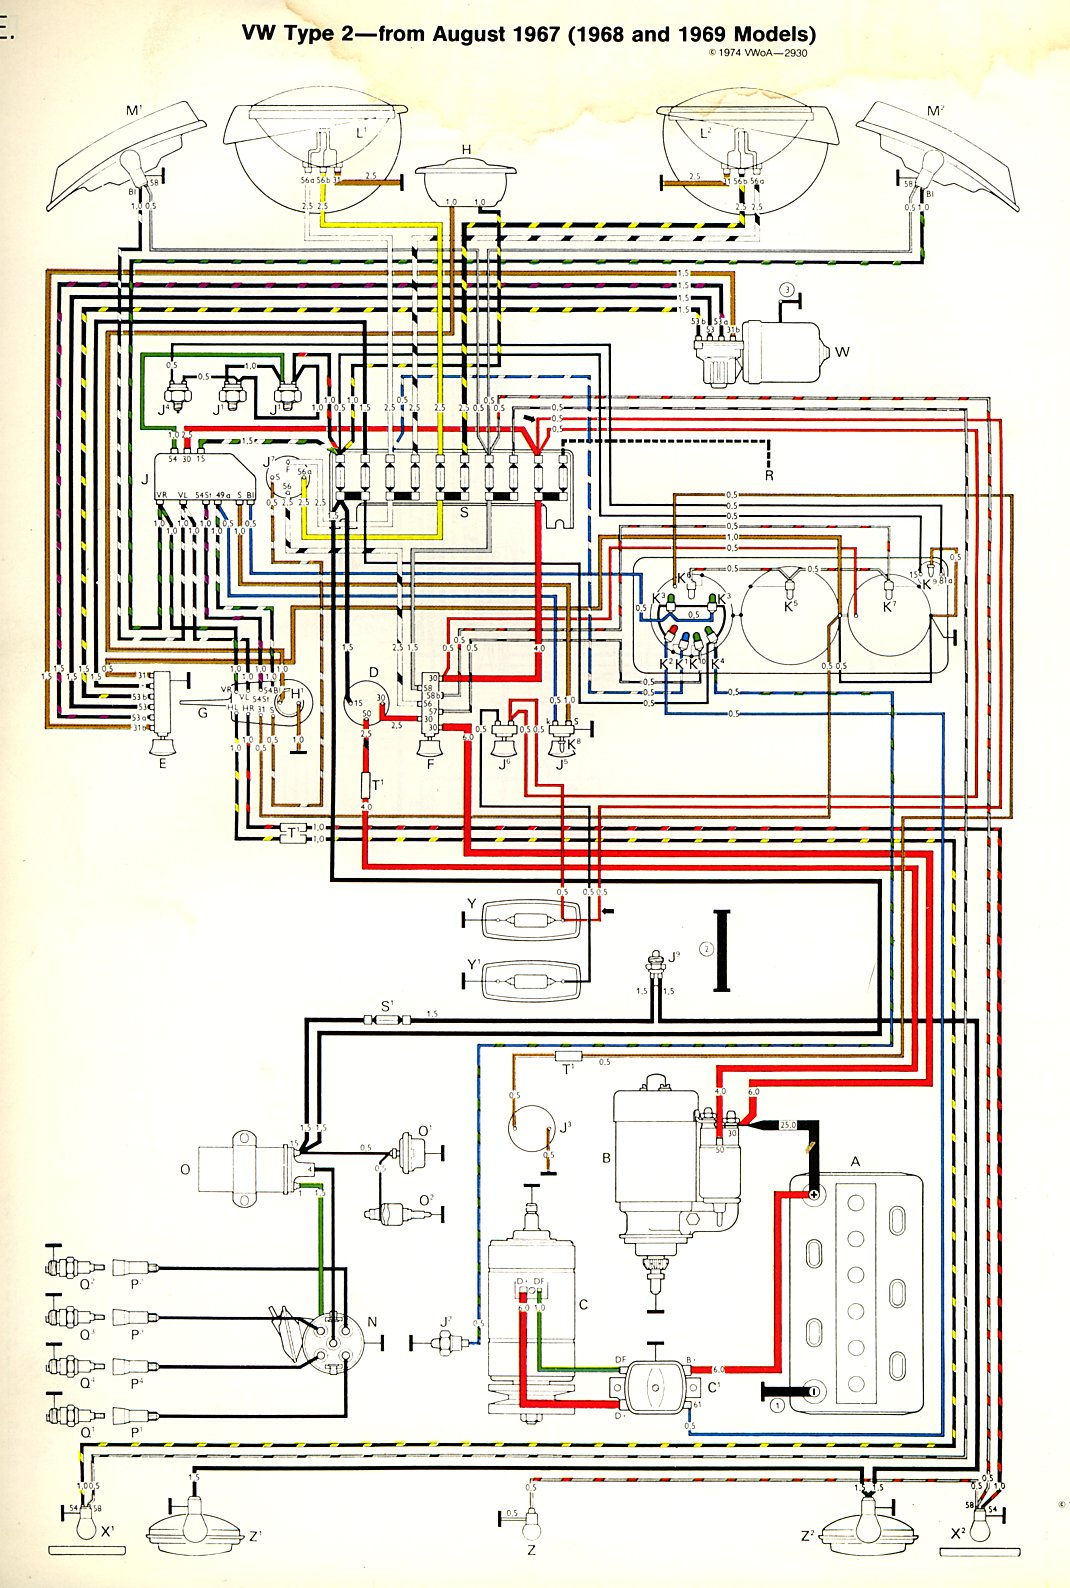 2000 International Fuse Box Diagram Type 2 Wiring Diagrams